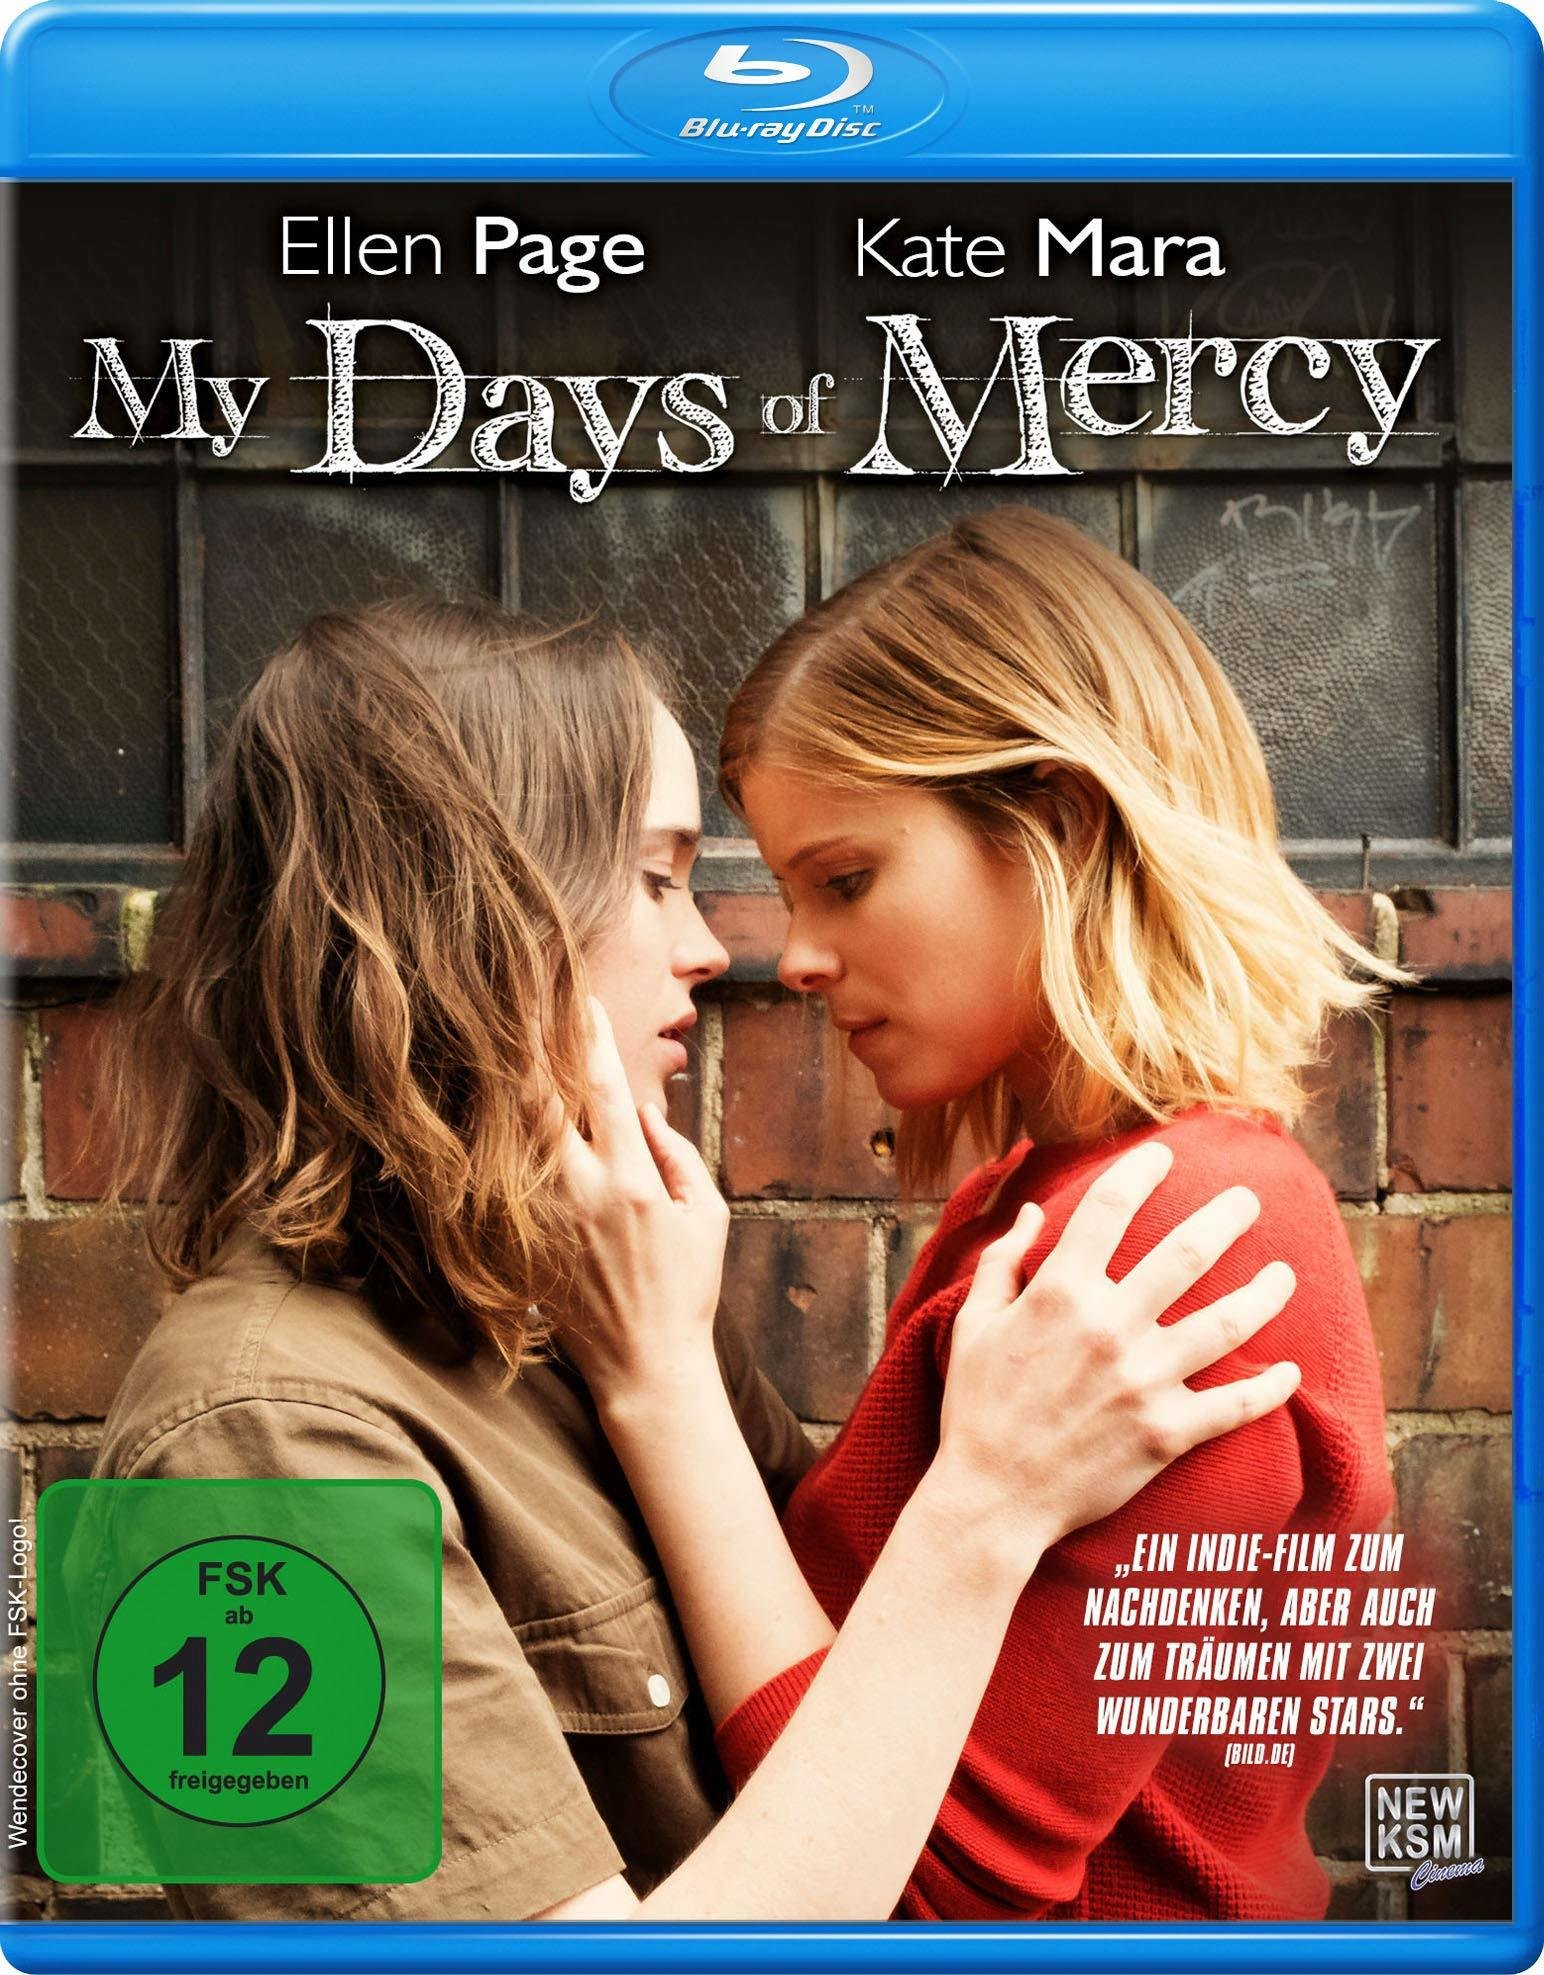 My Days of Mercy (2017) poster image